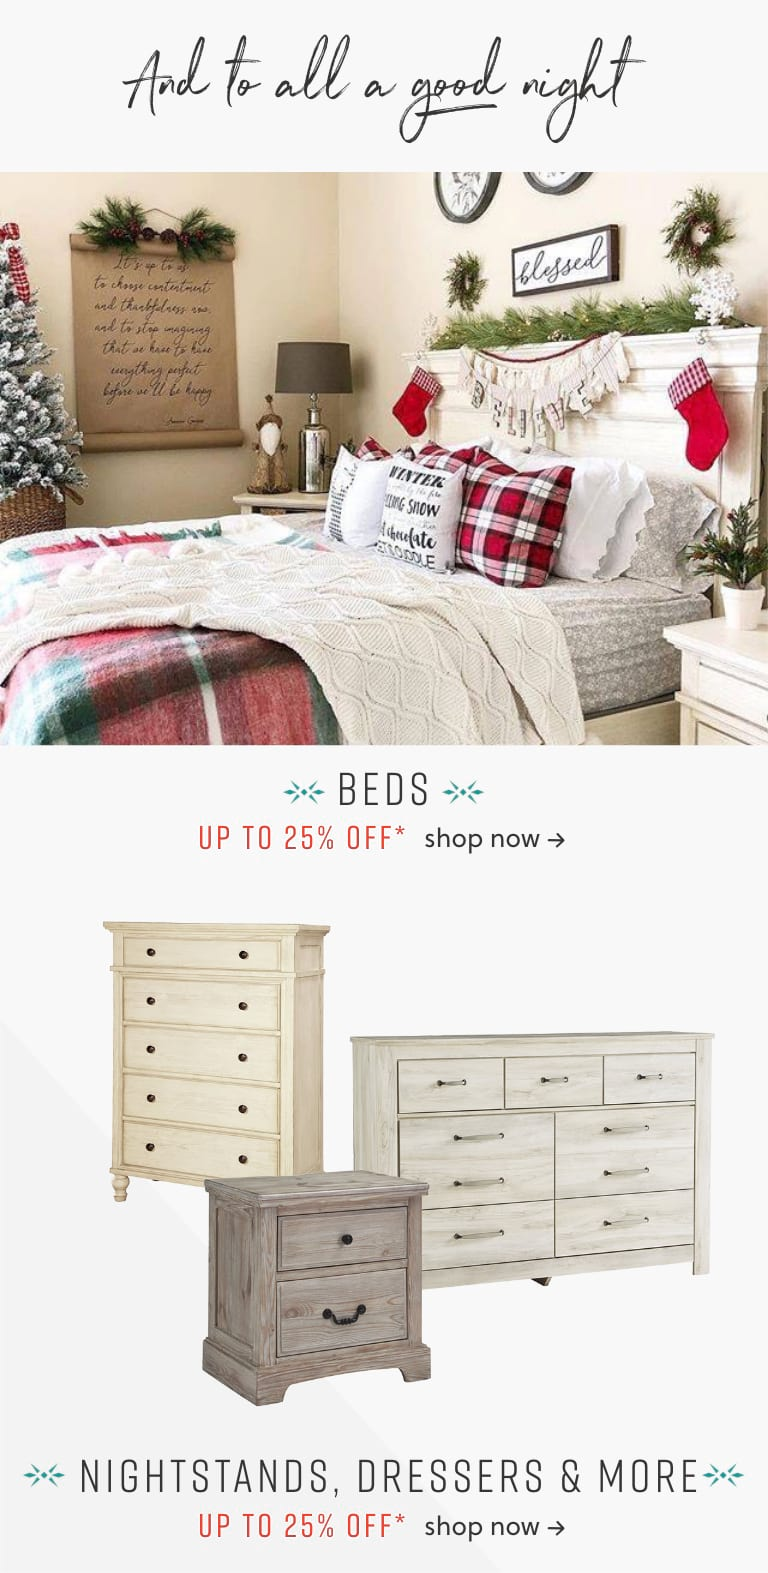 Beds, Nightstands, Dressers, Bedroom Furniture